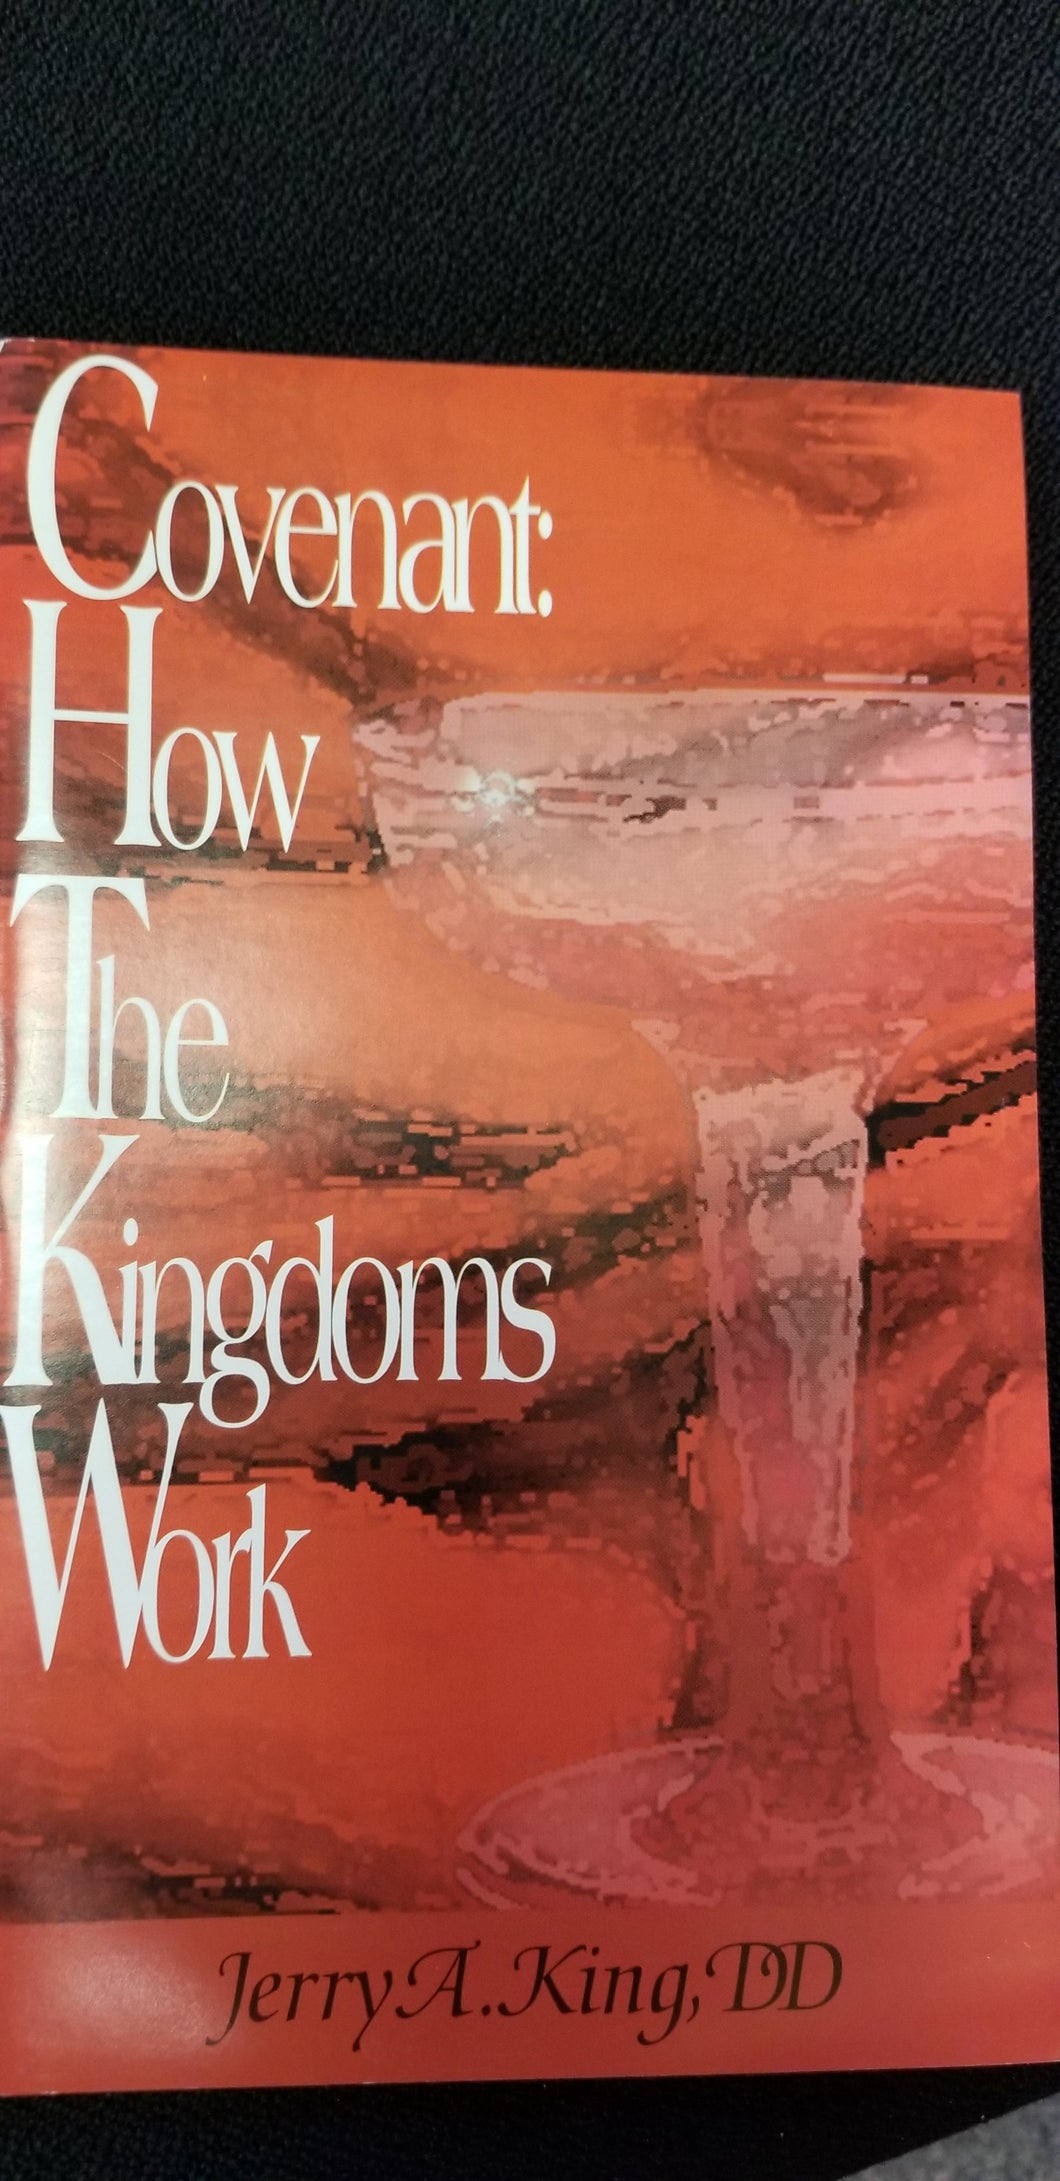 Covenant: How The Kingdoms Work